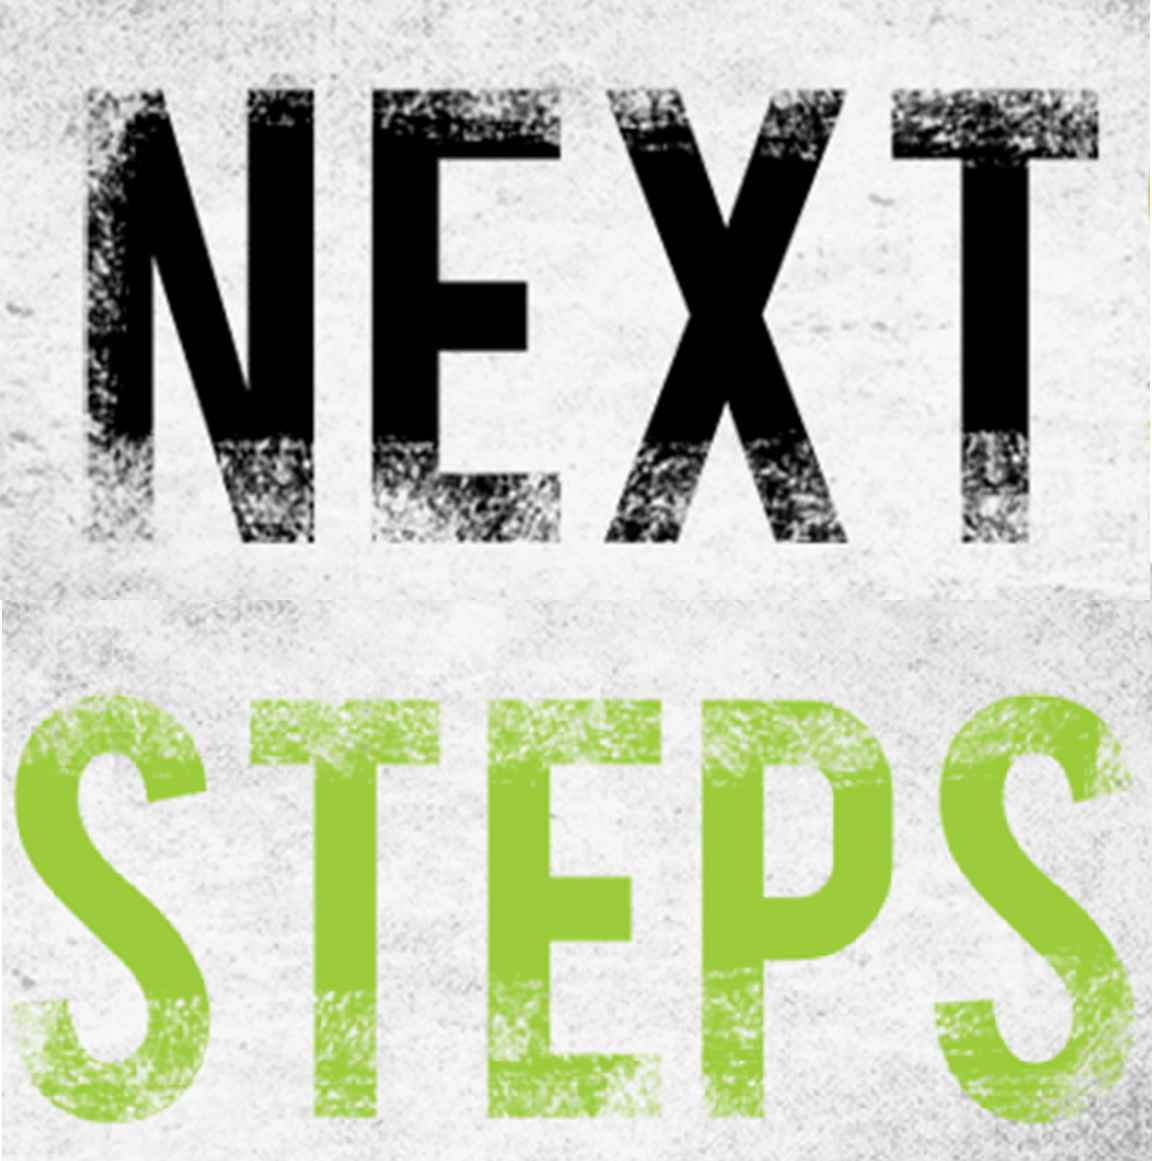 Next Steps: The Work of the Human CommunityNetwork